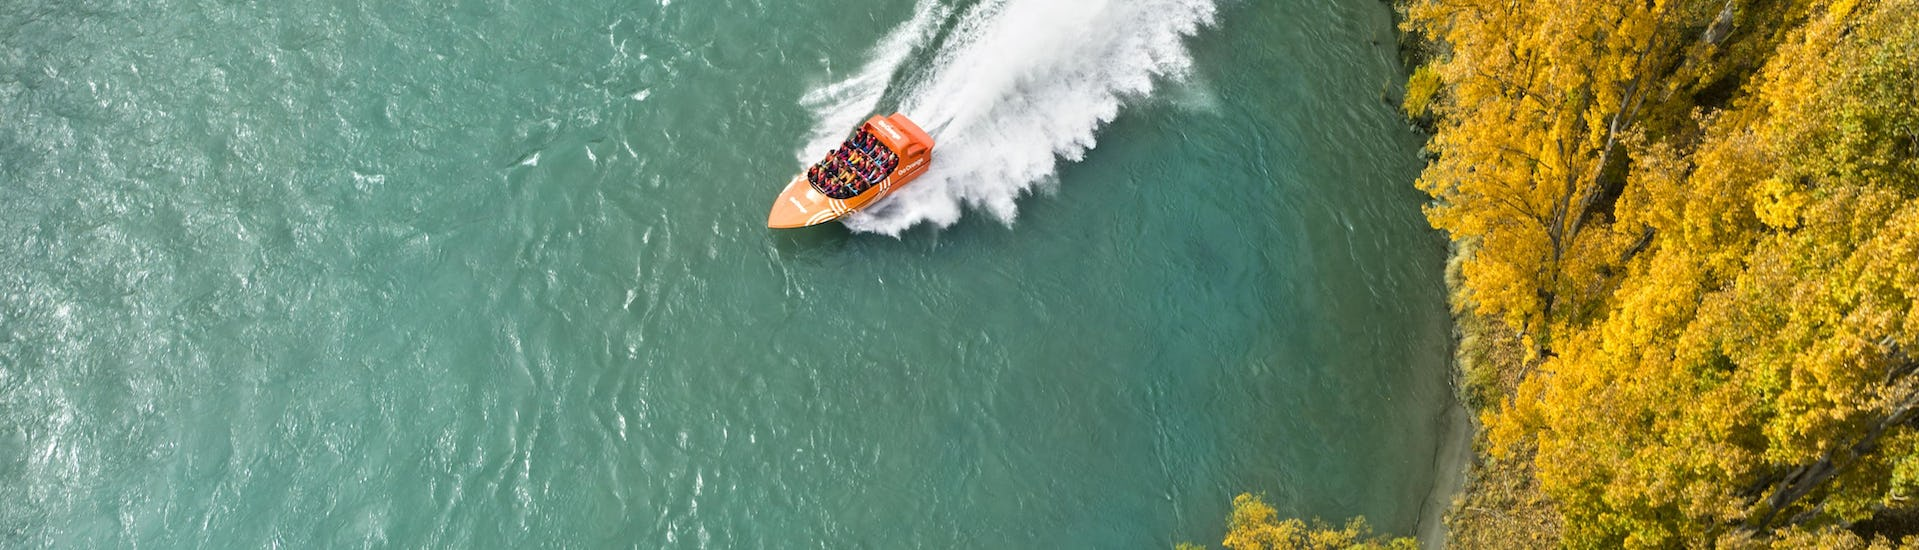 Fun on the river during White Water Rafting from Queenstown with Jet Boat Ride organized by Go Orange